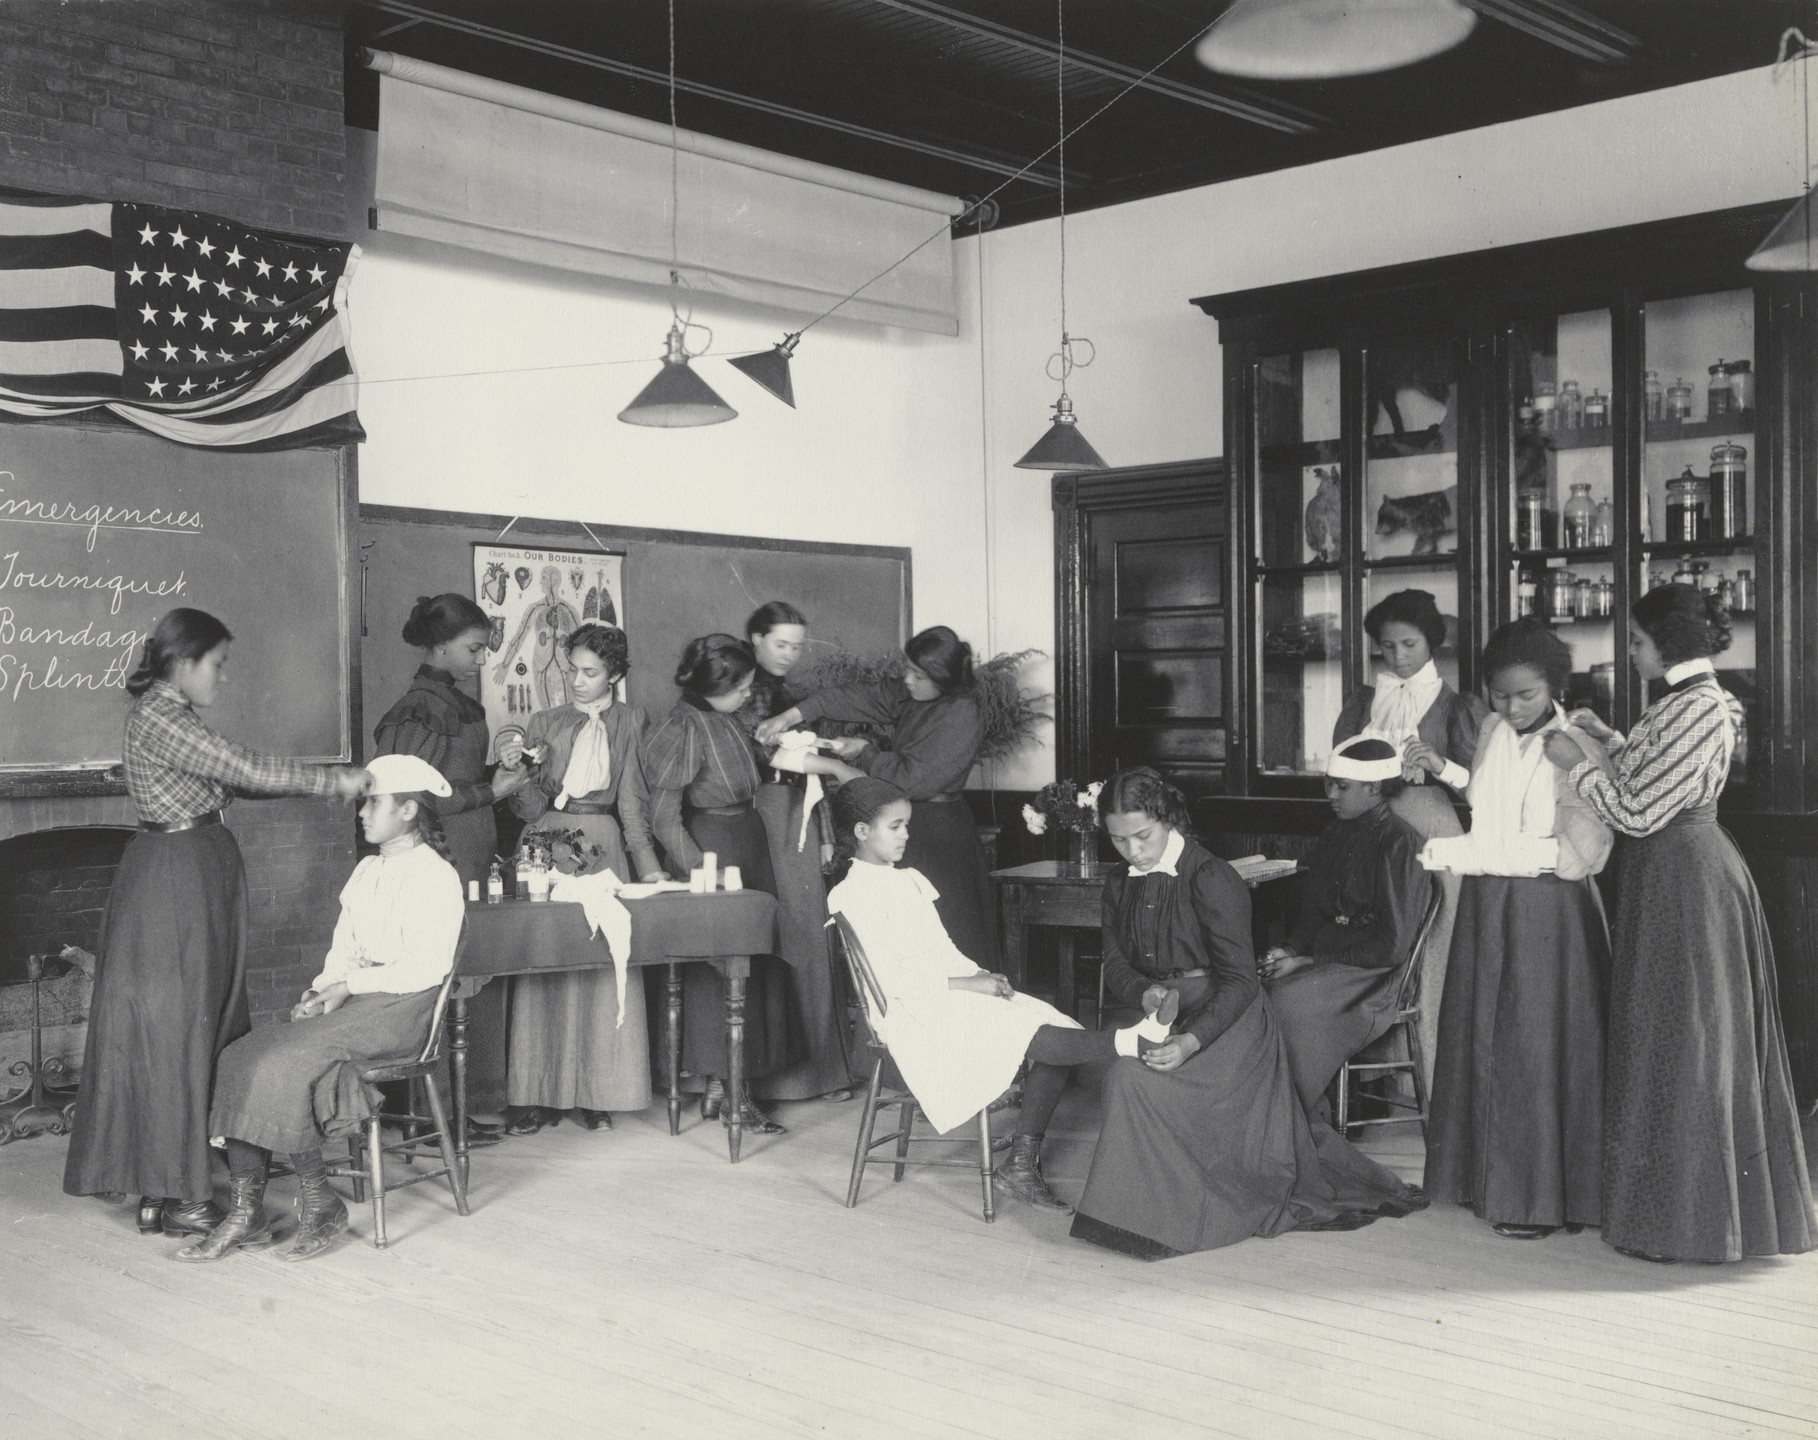 Frances Benjamin Johnston. Physiology. Class in emergency work. 1899-1900